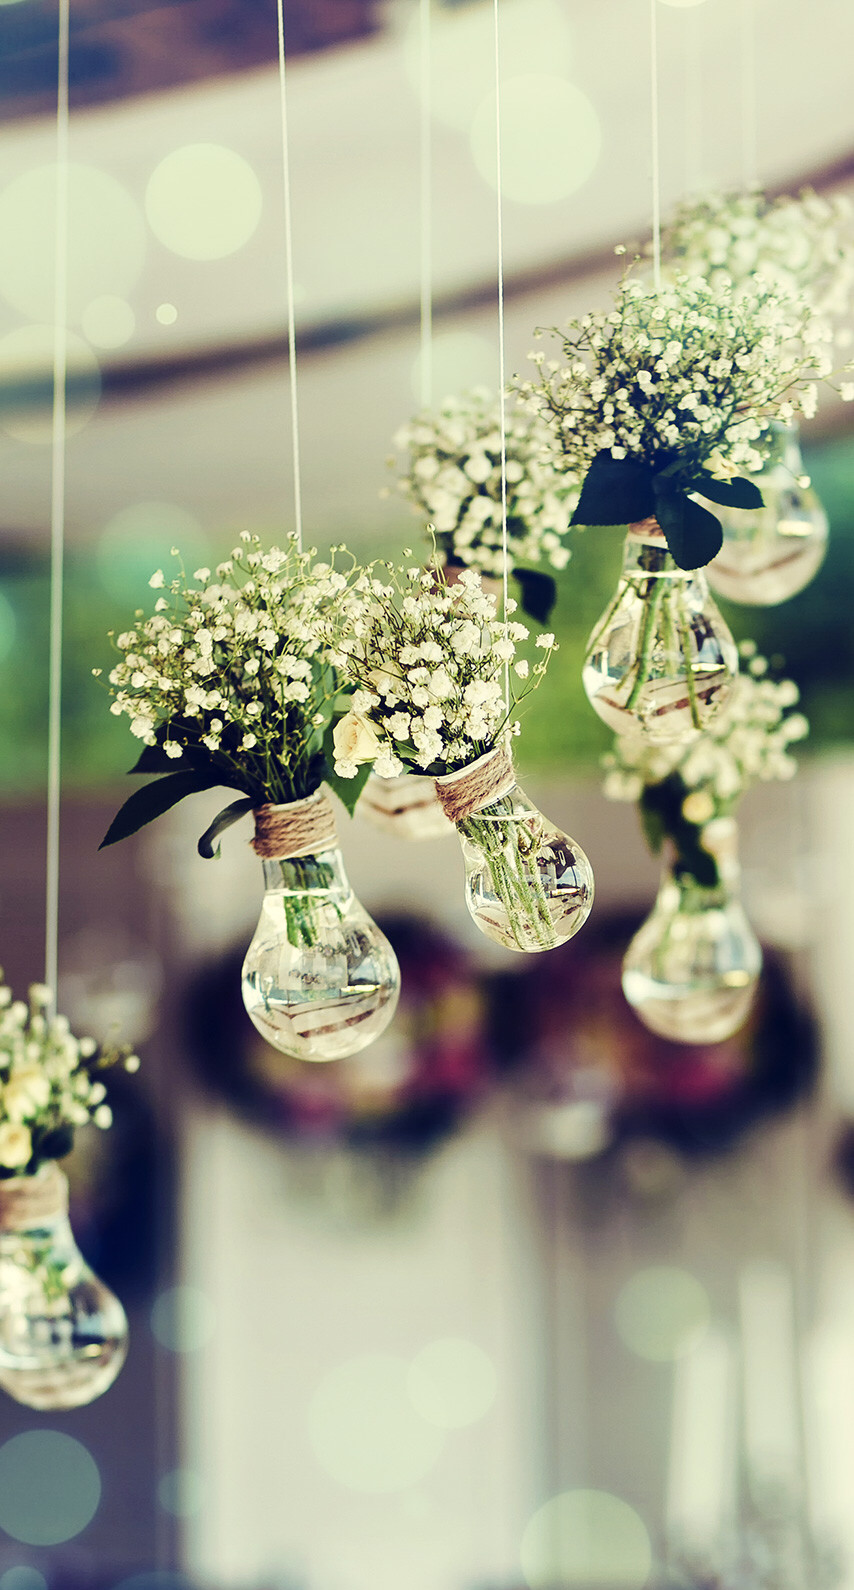 Light Bulb Flower Vase Of Bulb Flower Base‼ ‼ ‼ Rustic and Vintage Wedding Intended for Bulb Flower Base‼ ‼ ‼i¸